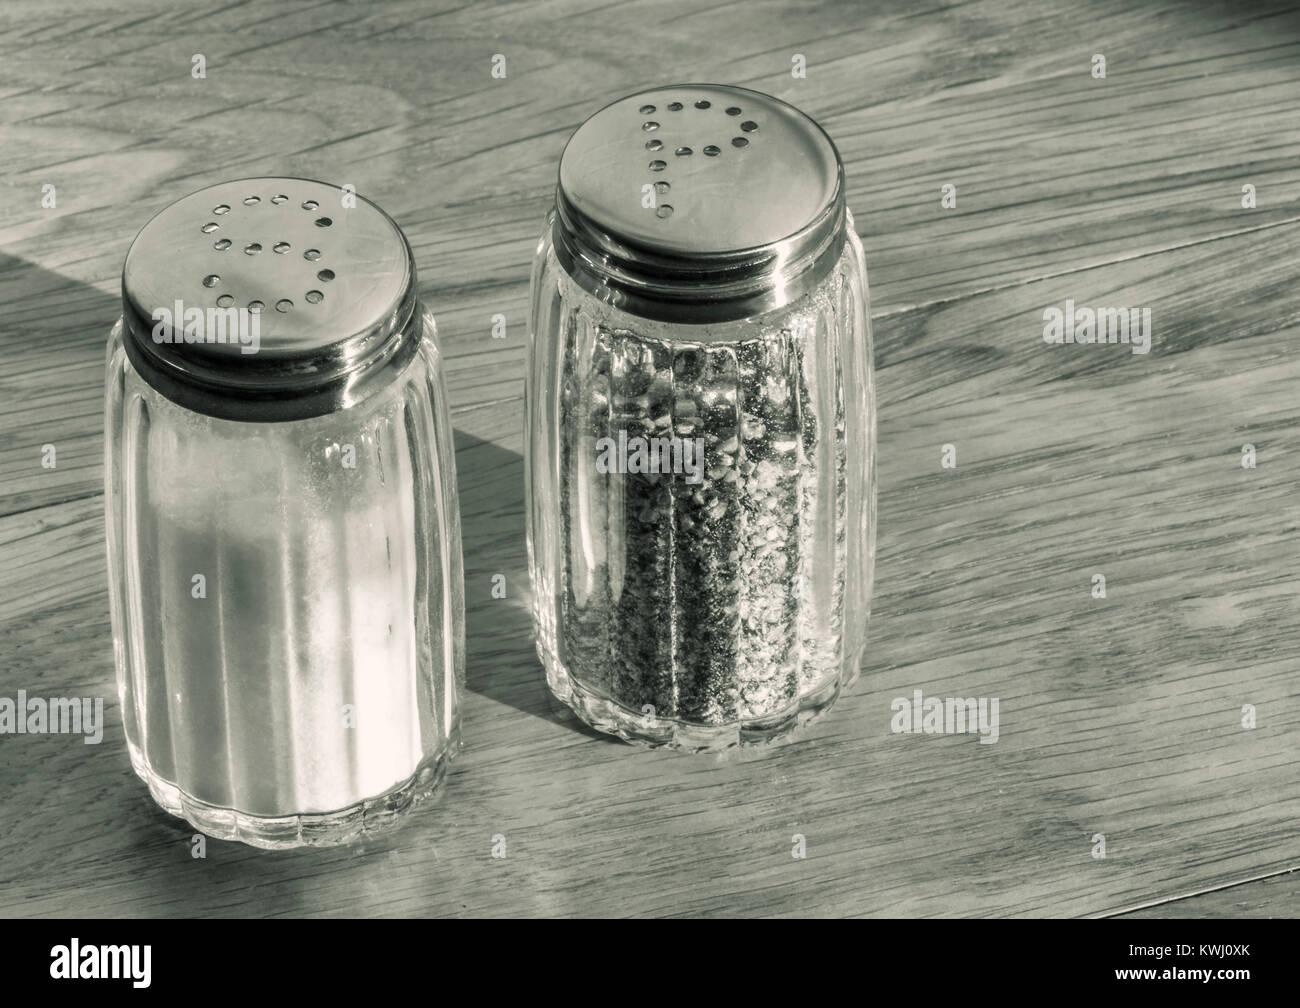 Close up of glass salt and pepper shakers or salt and pepper pots on a wooden table . - Stock Image